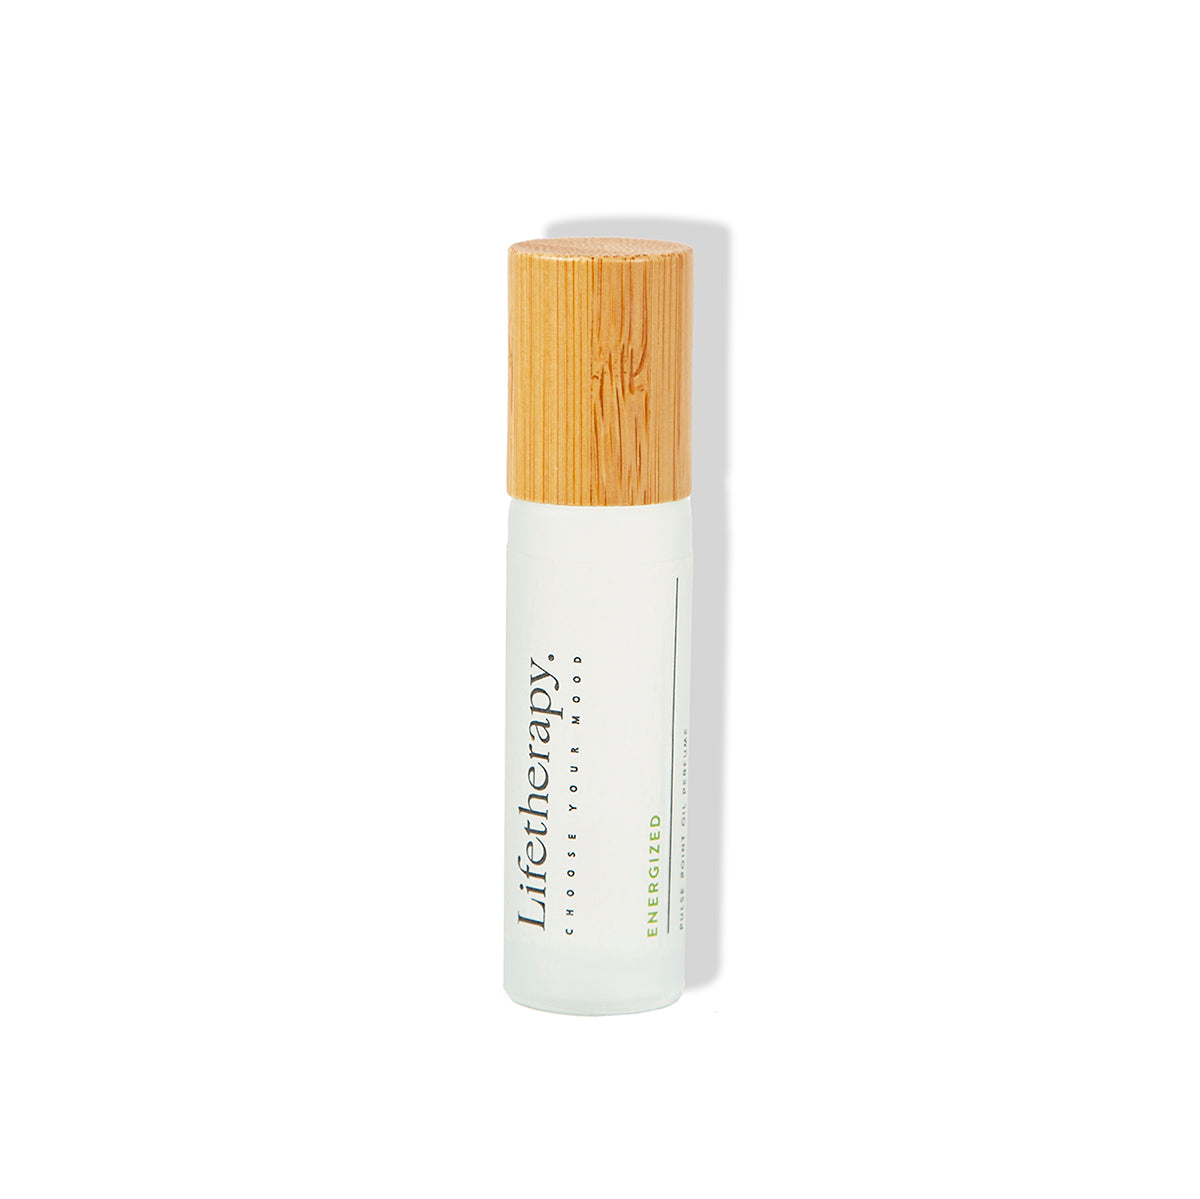 Energized Pulse Point Oil Roll-on Perfume